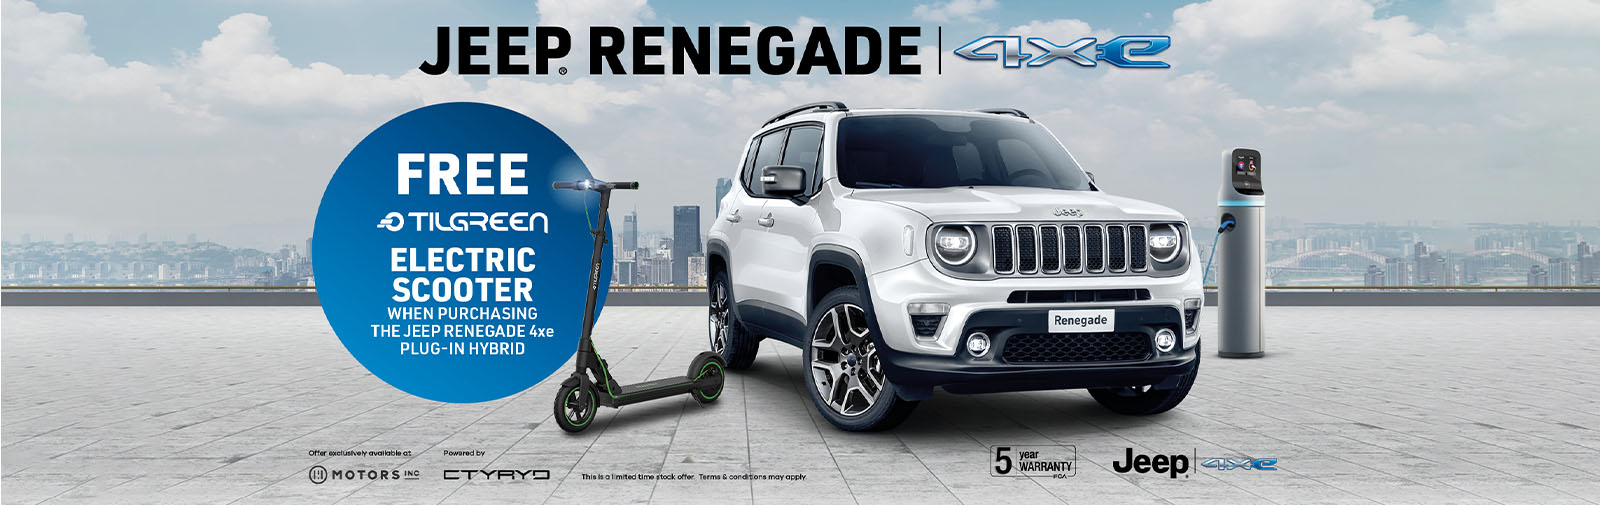 JEEP_4XE_OFFER